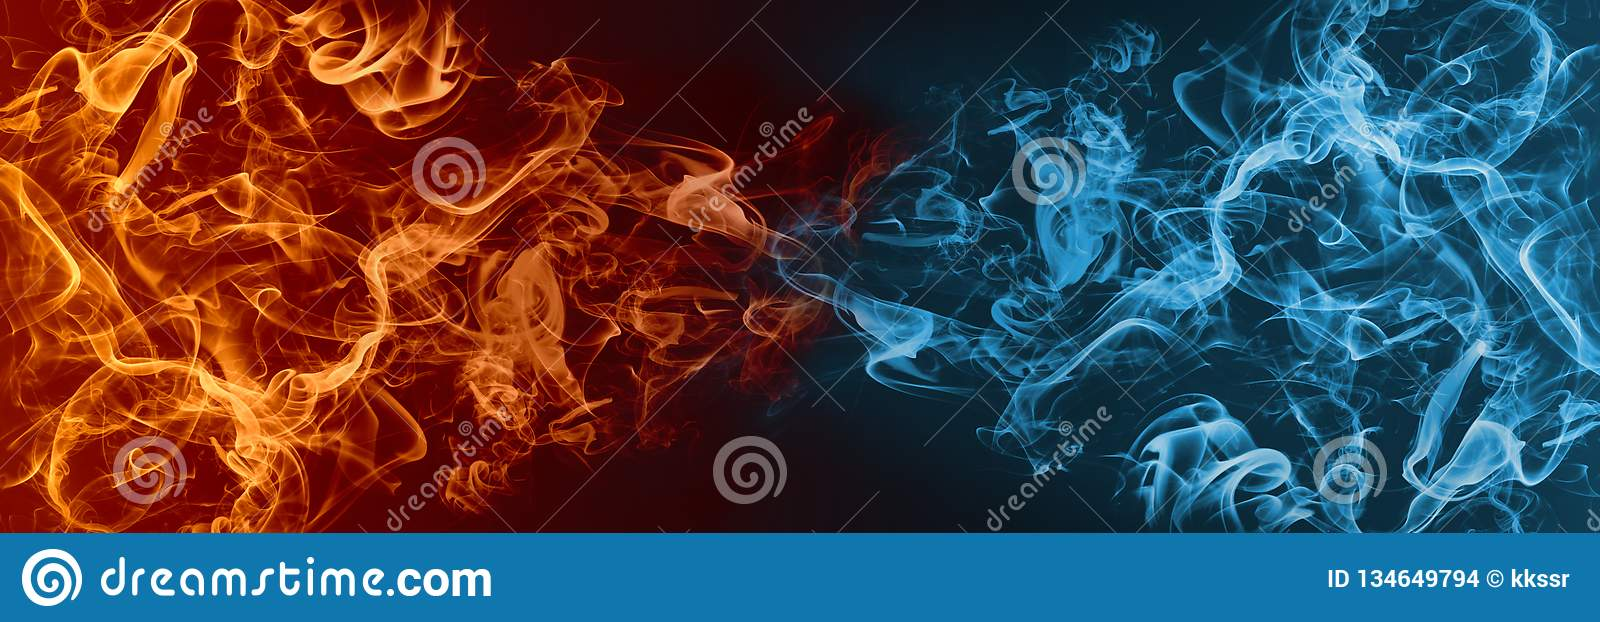 Abstract Fire and Ice element against vs each other background.